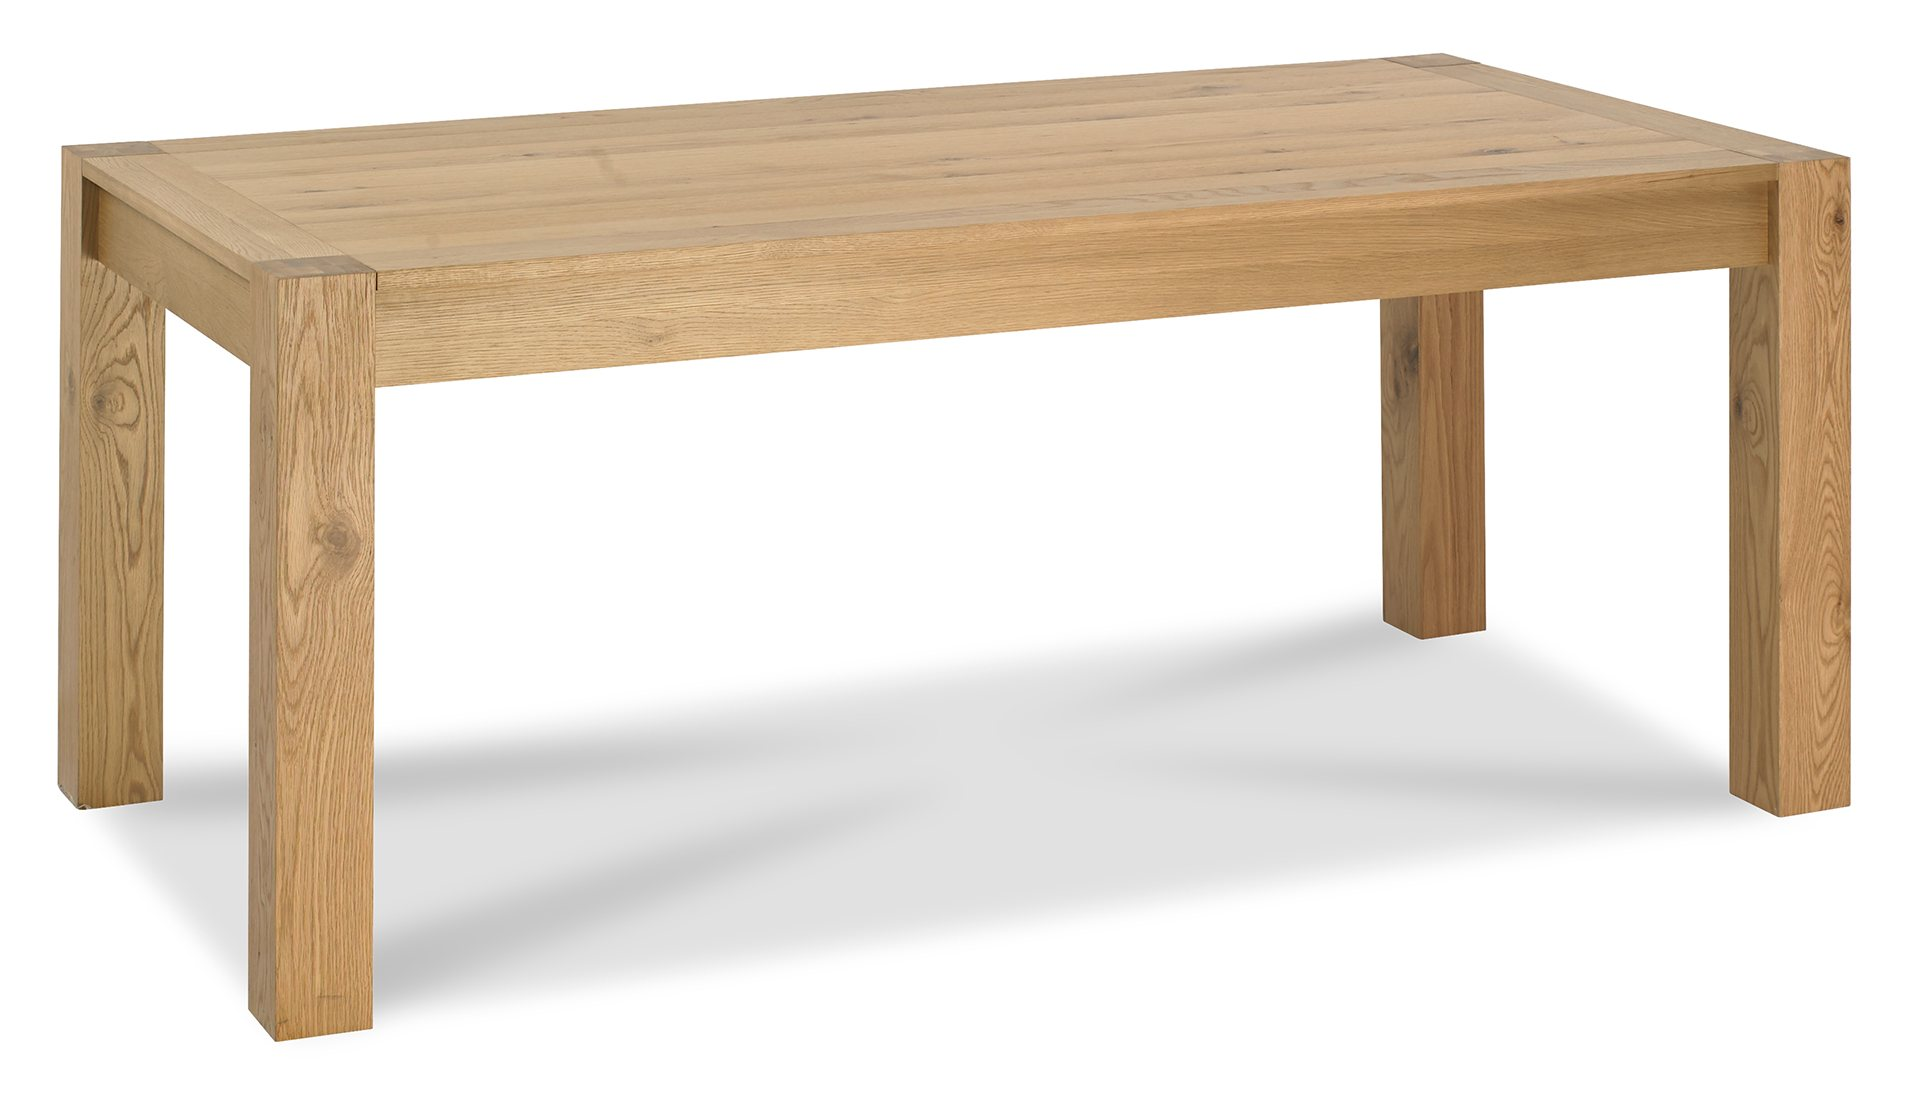 LILLE OAK LARGE EXTENDING TABLE CLOSED - L185cm x D90cm x H75cm